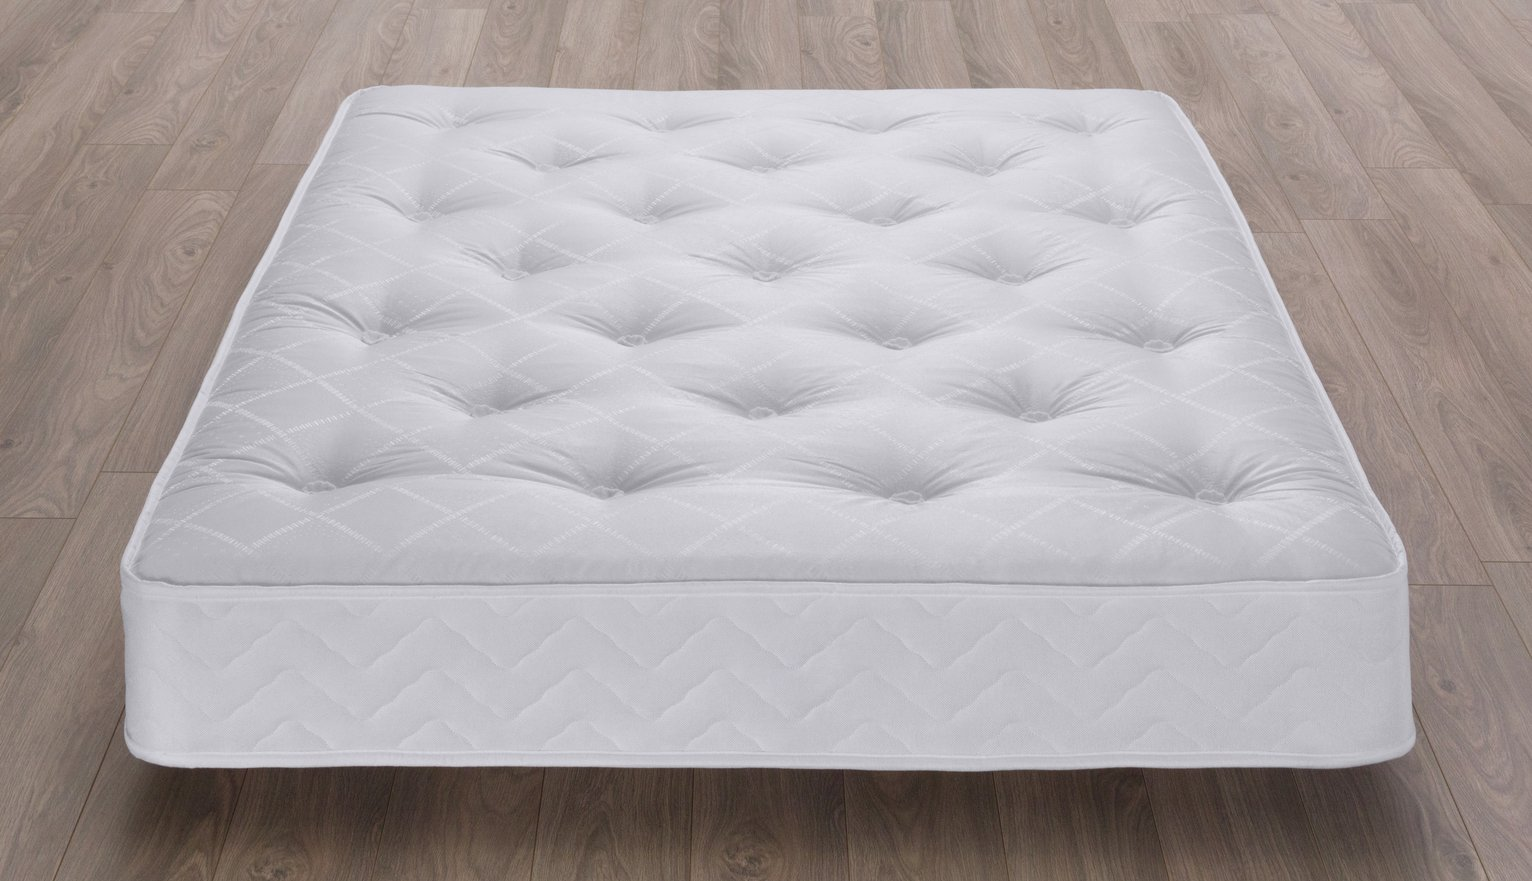 Airsprung Henlow 1200 Pocket Double Mattress